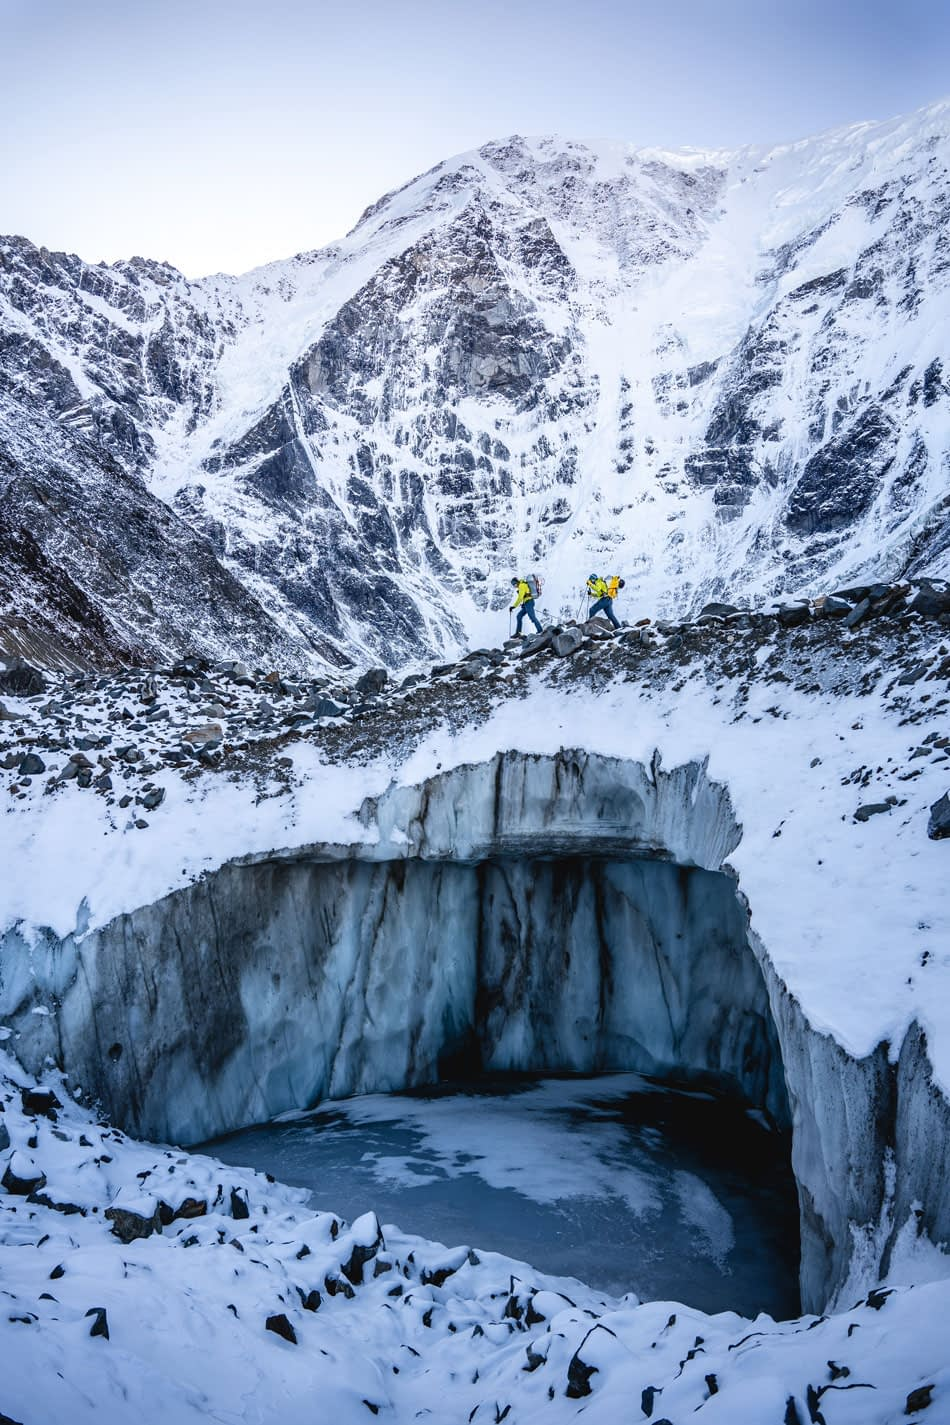 Beautiful photo of icy mountain with Benny Lieber and group using XEROS ropes